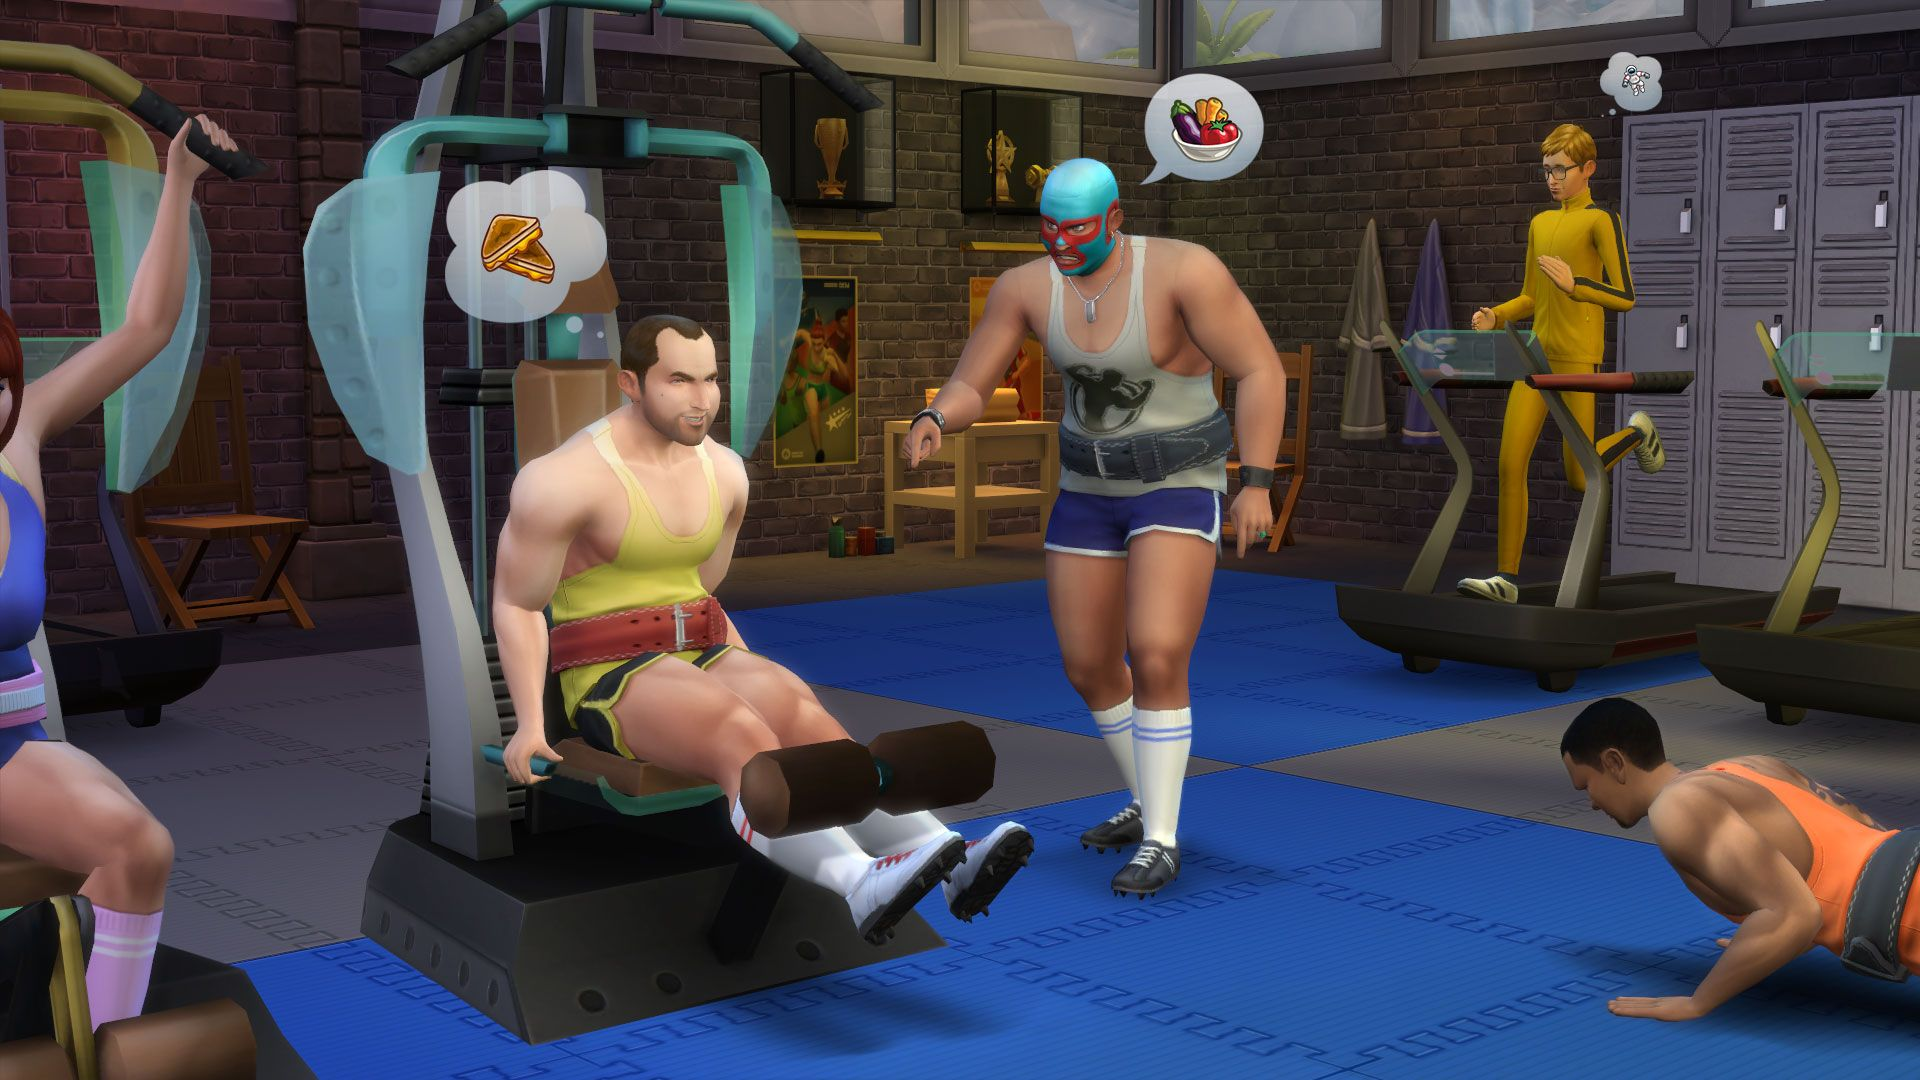 Game Fix / Crack: The Sims 4: Get to Work v1.5.139.1020